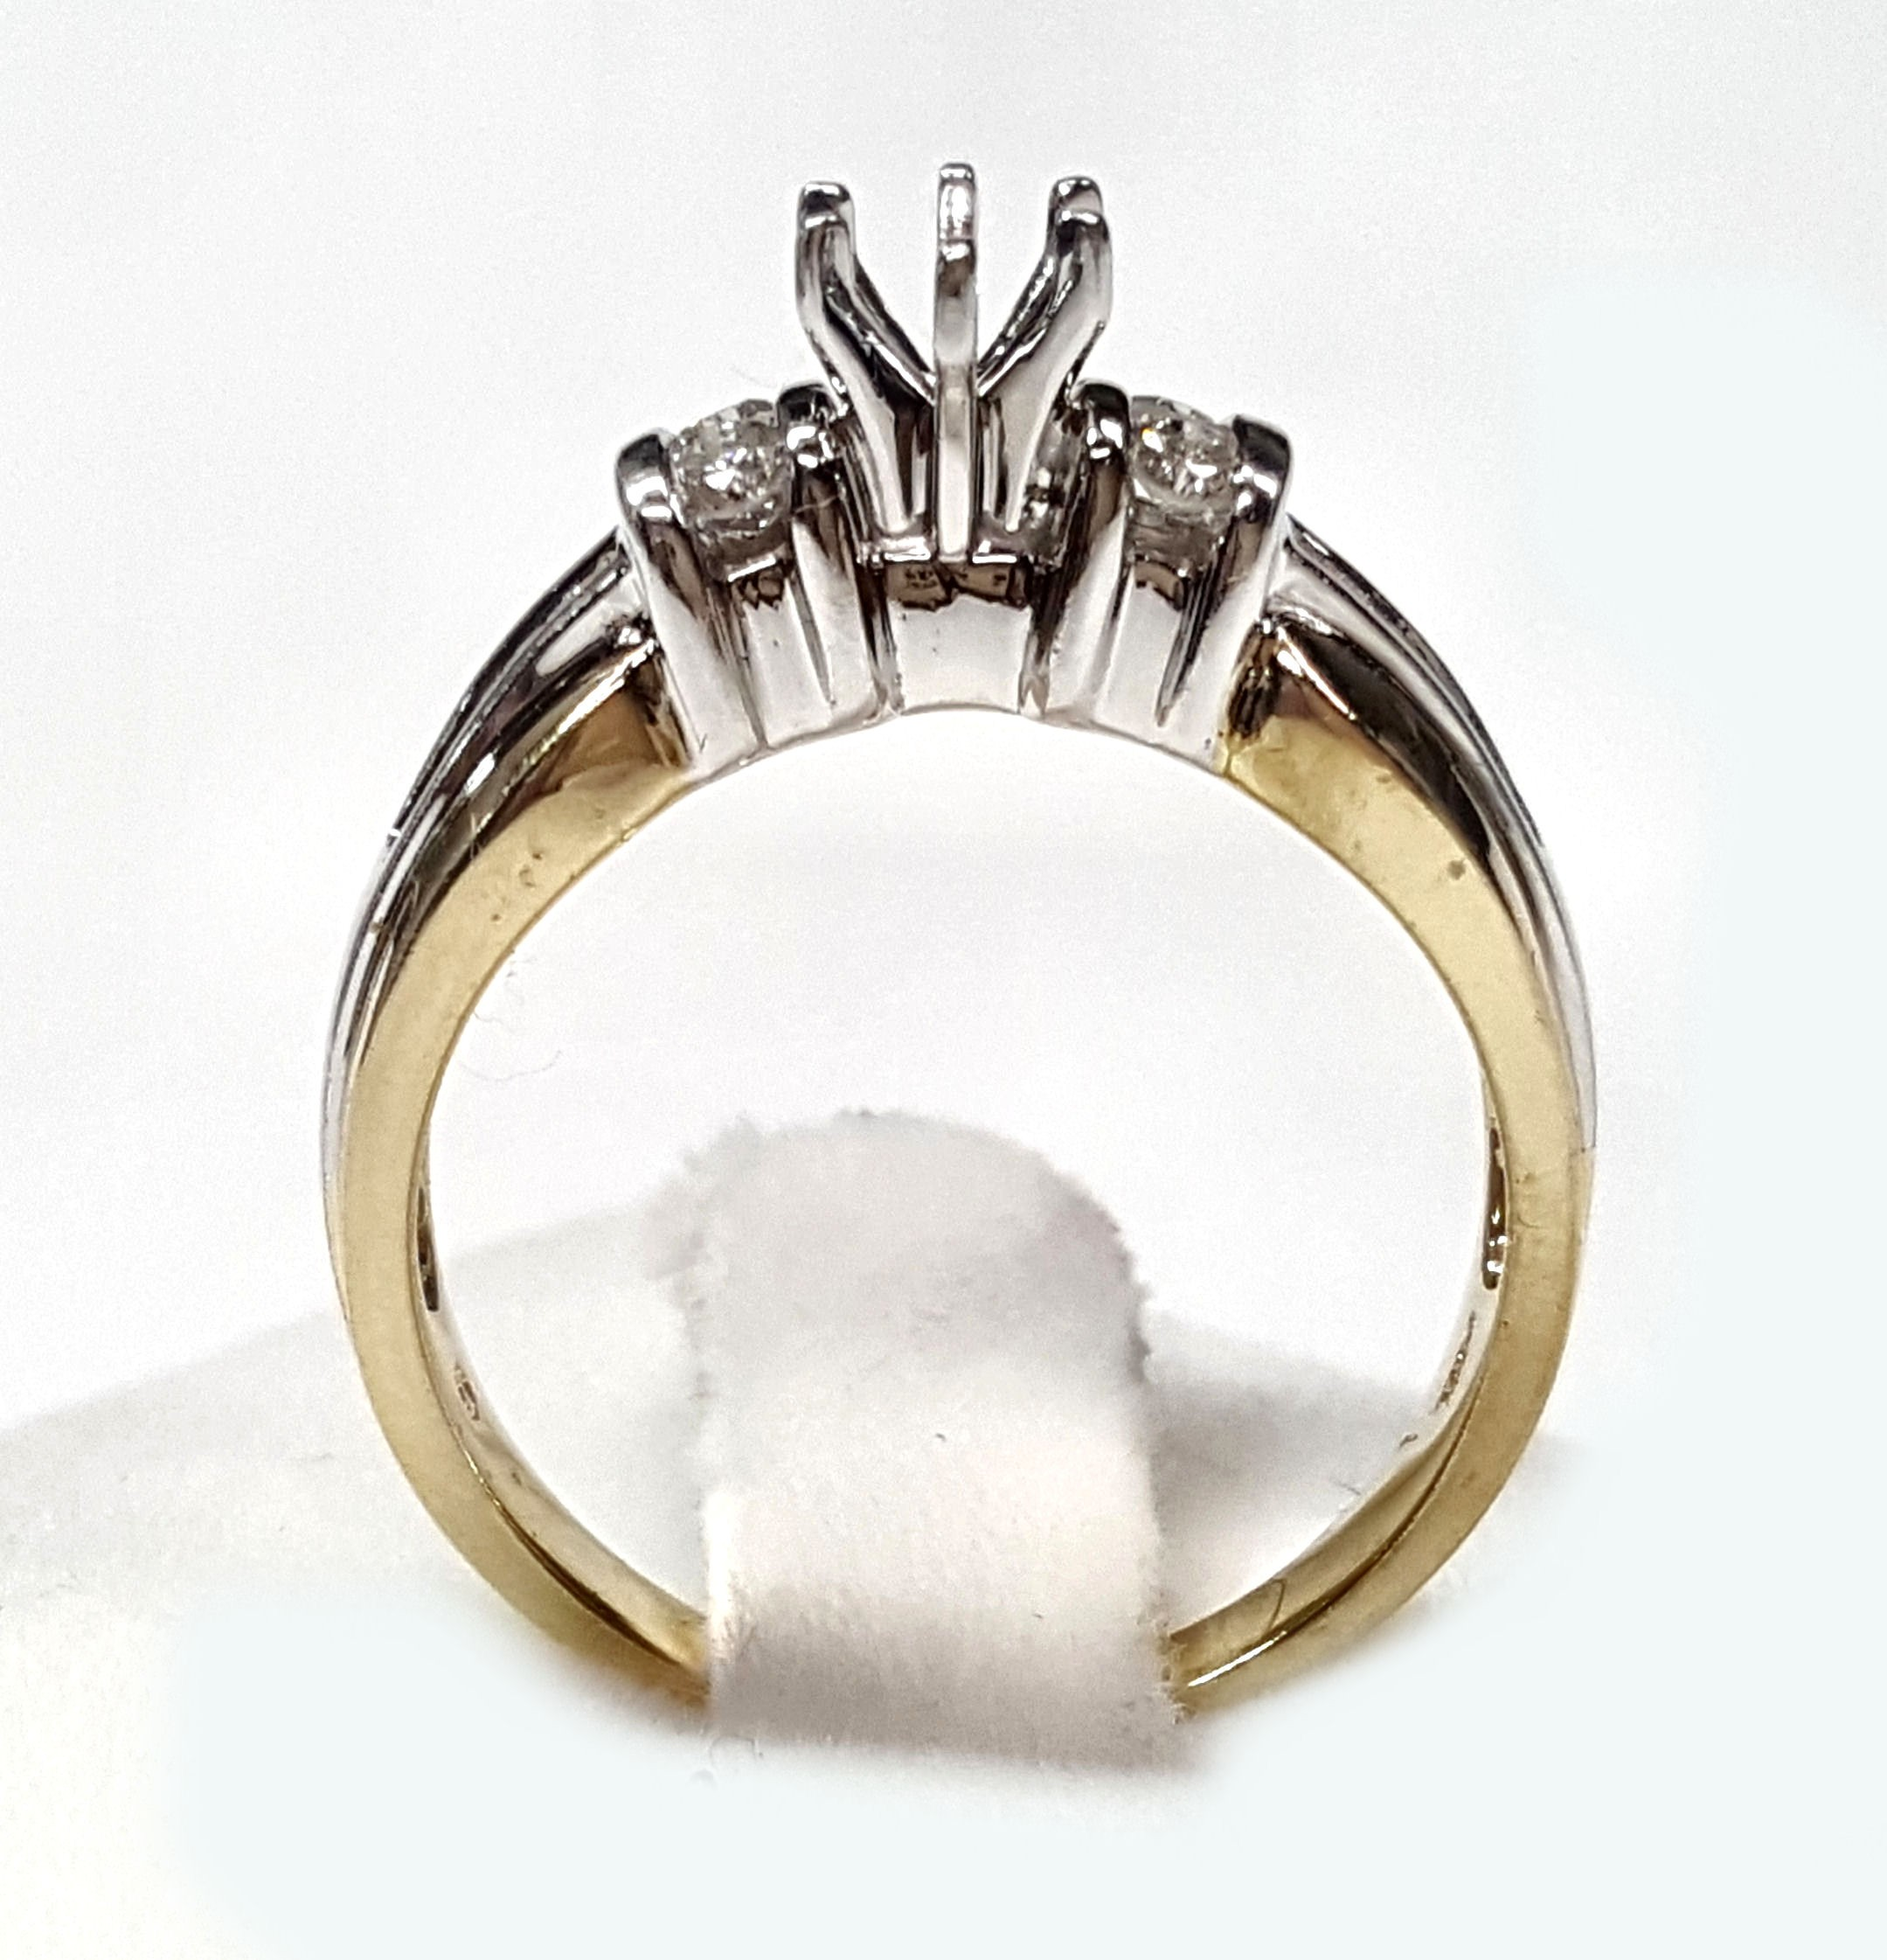 Baguette & Round diamond engagement ring mounting 32pts t w